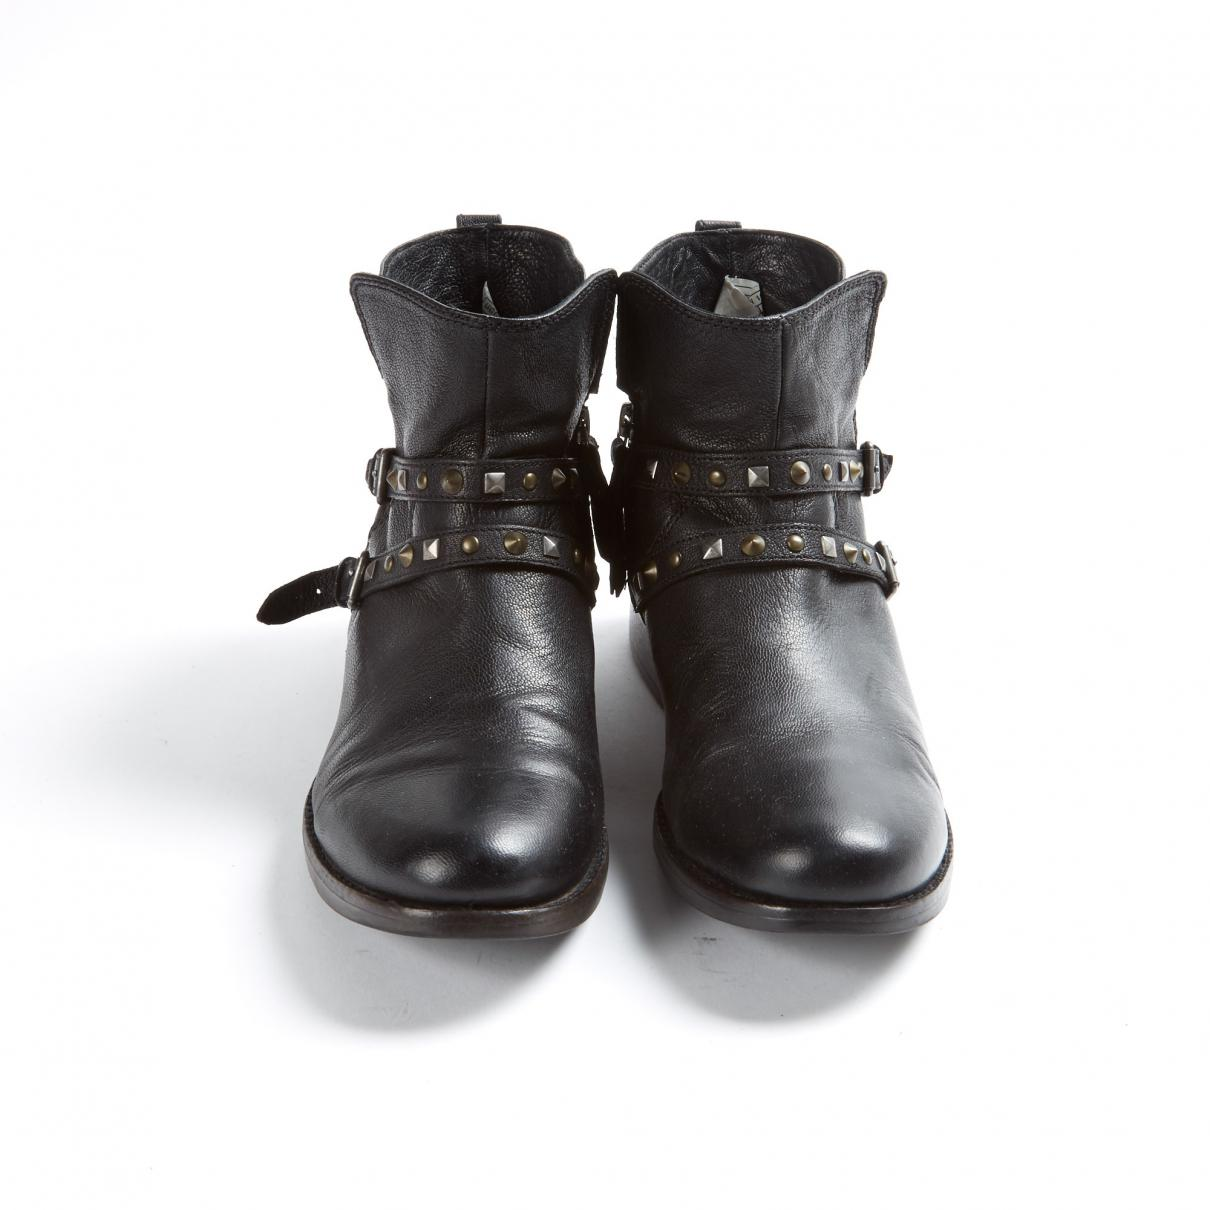 UGG Pre-owned Black Leather Ankle Boots